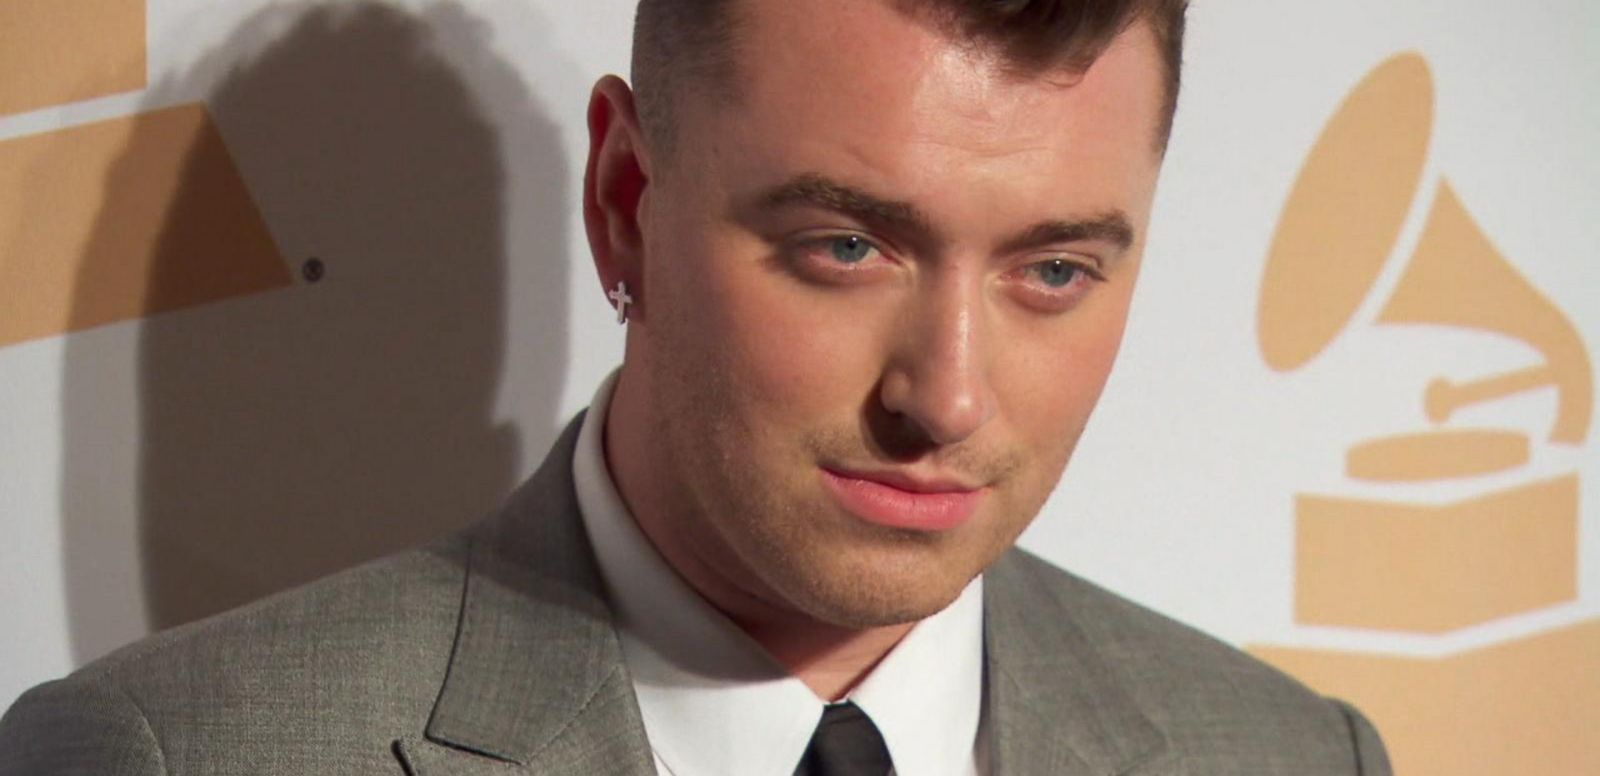 VIDEO: Sam Smith Cancels Tour After Suffering Vocal Chord Hemorrhage